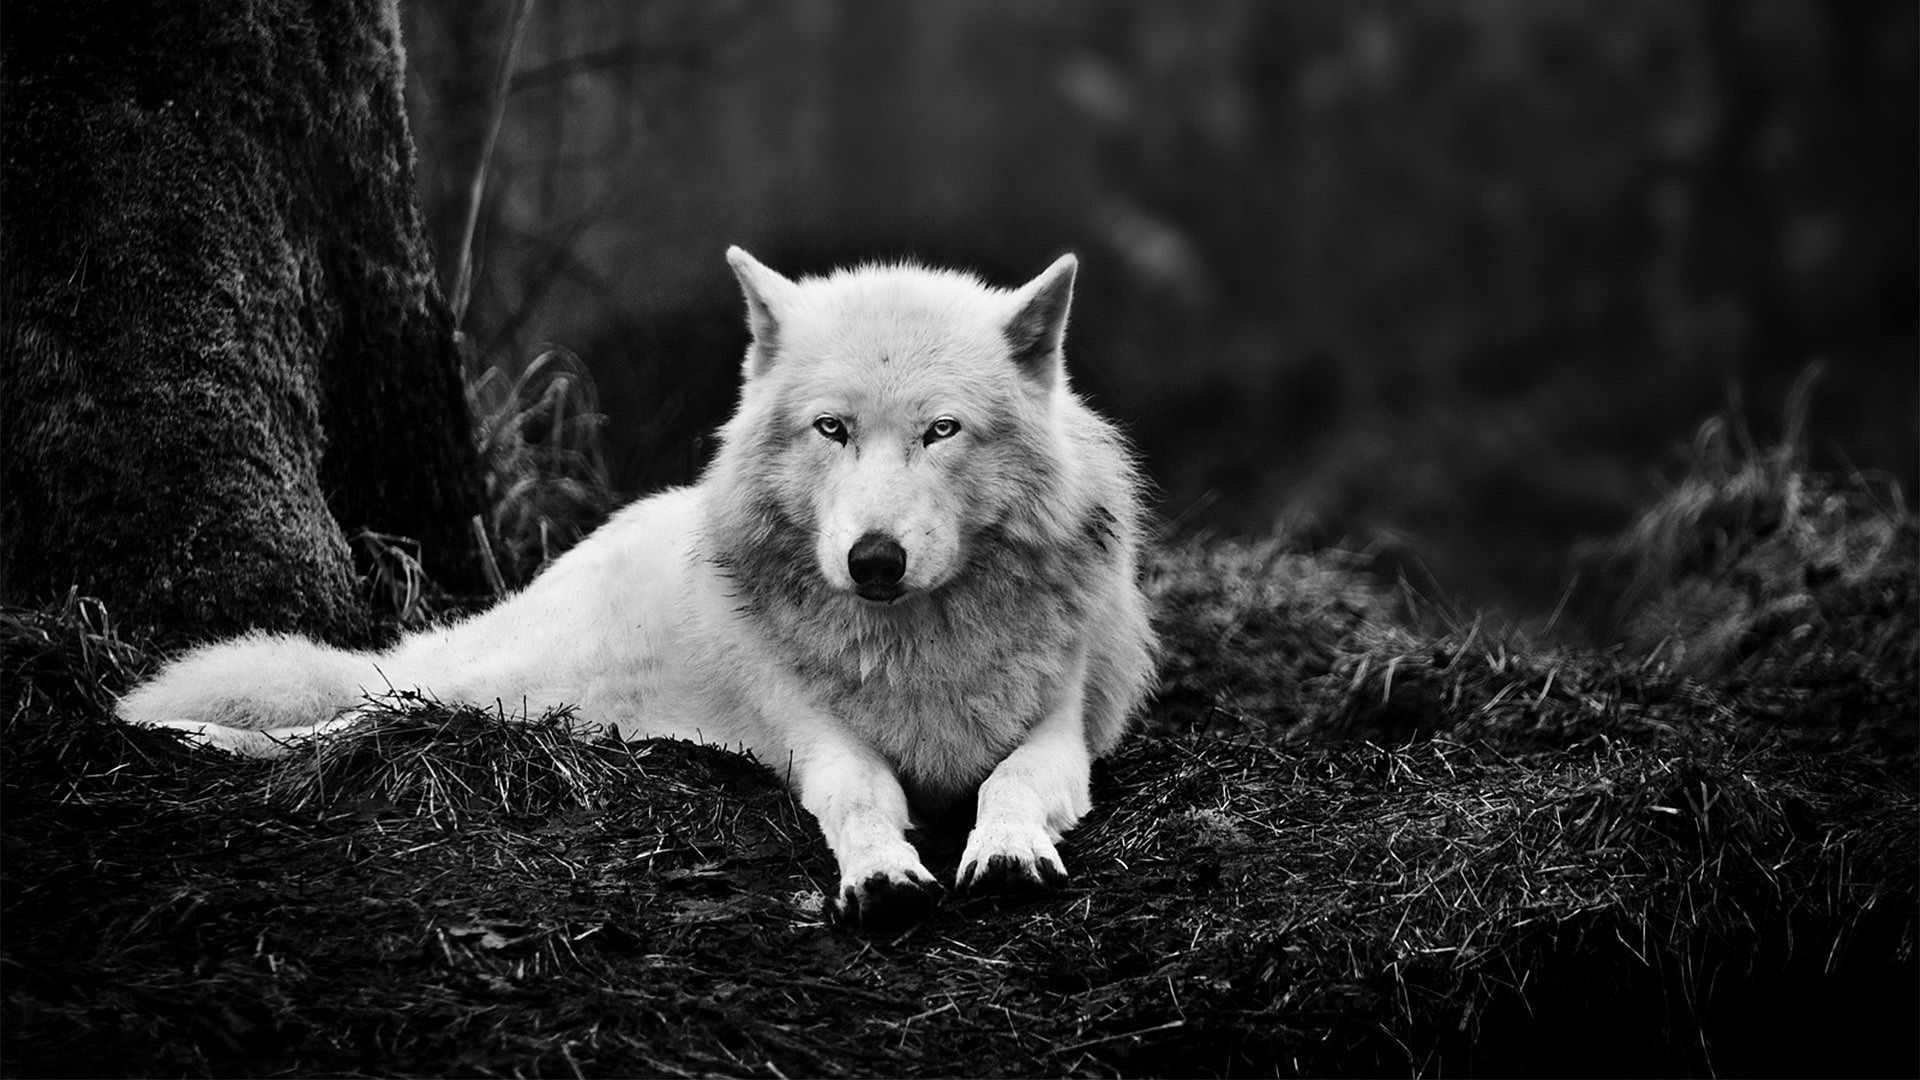 Wolf Hd Wallpaper Iphone Posted By Sarah Anderson